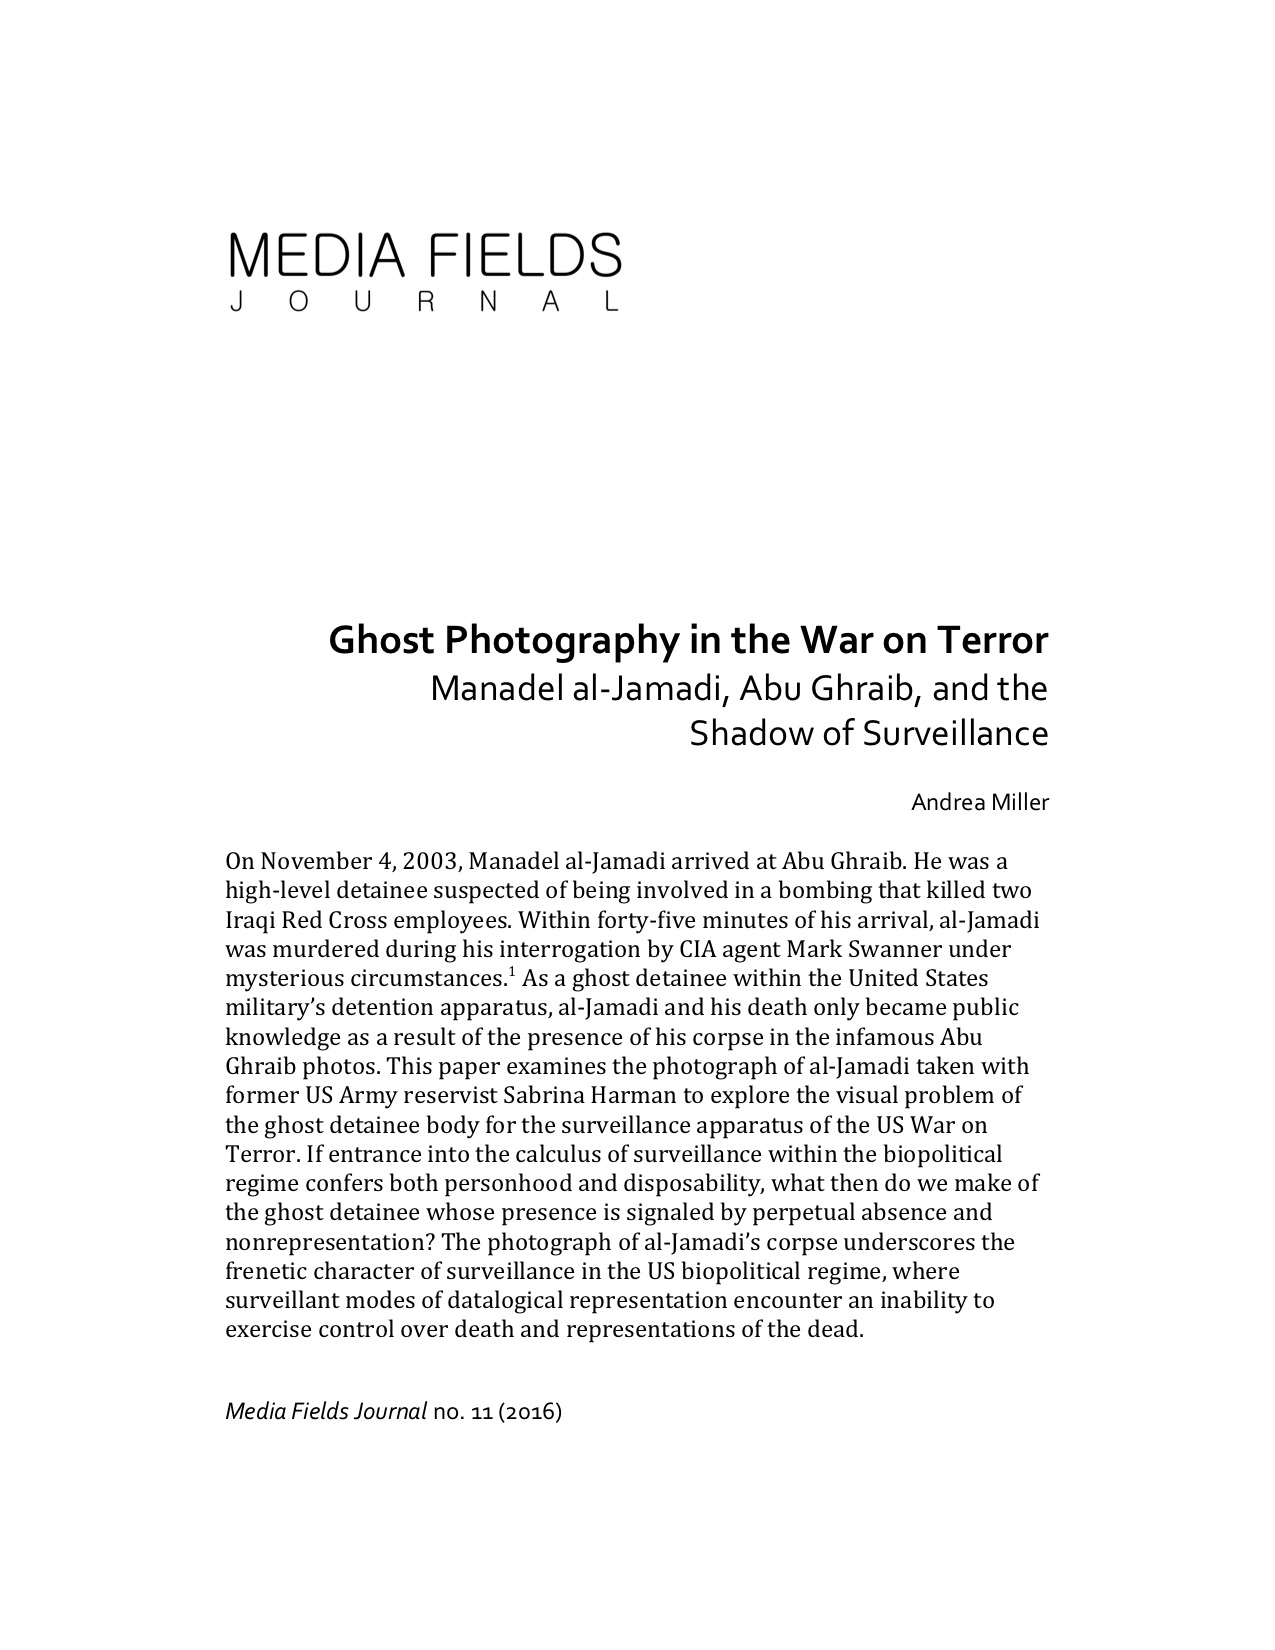 Miller, Andrea. Ghost Photography in the War on Terror.jpg